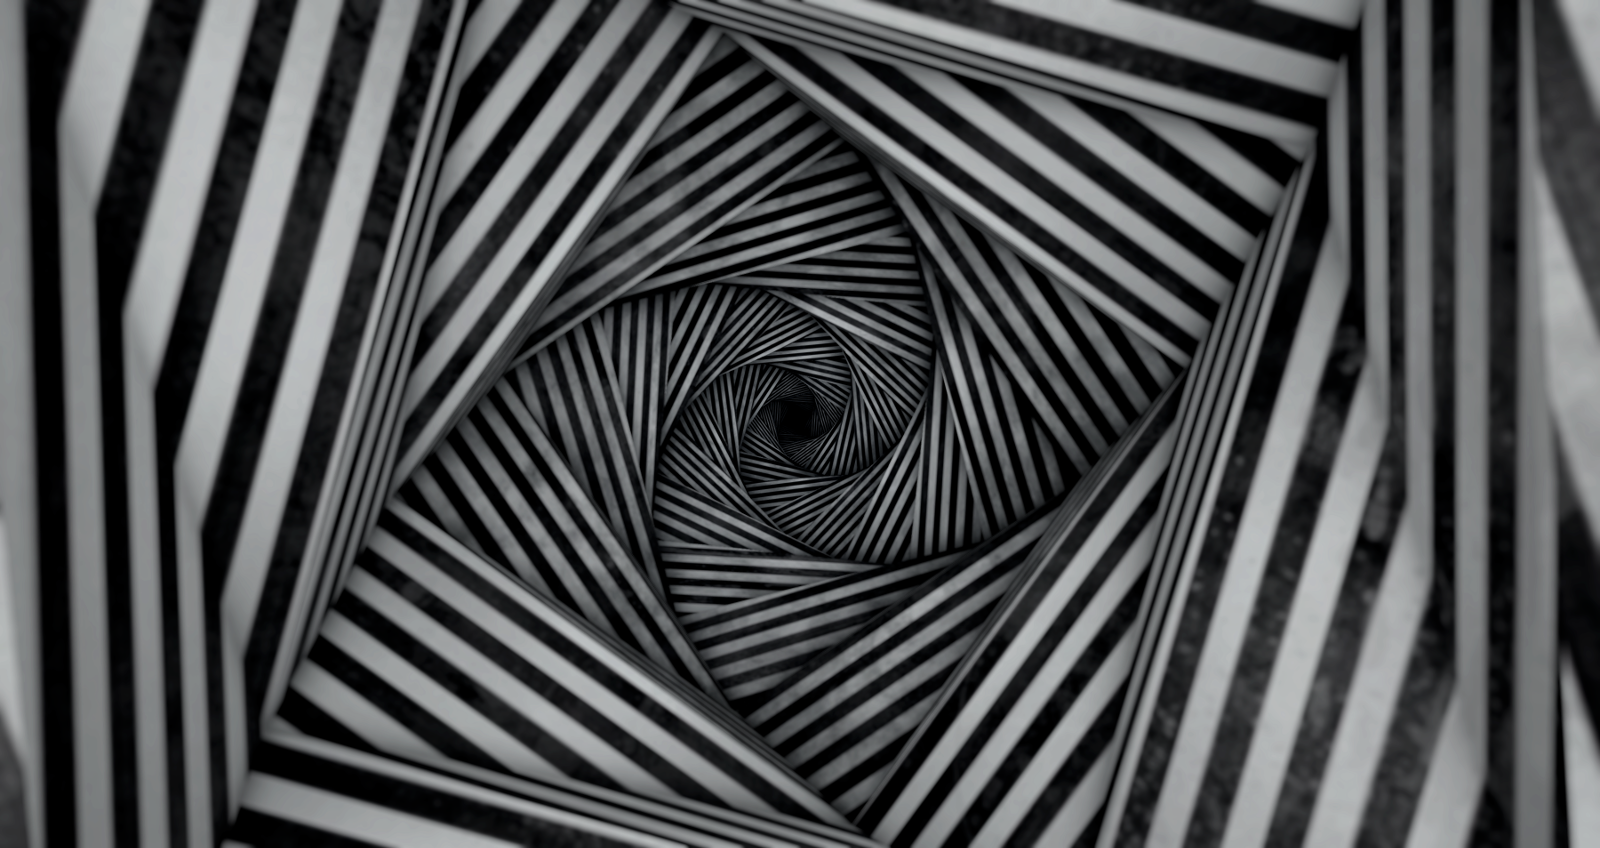 A ceiling conceived as a spiral